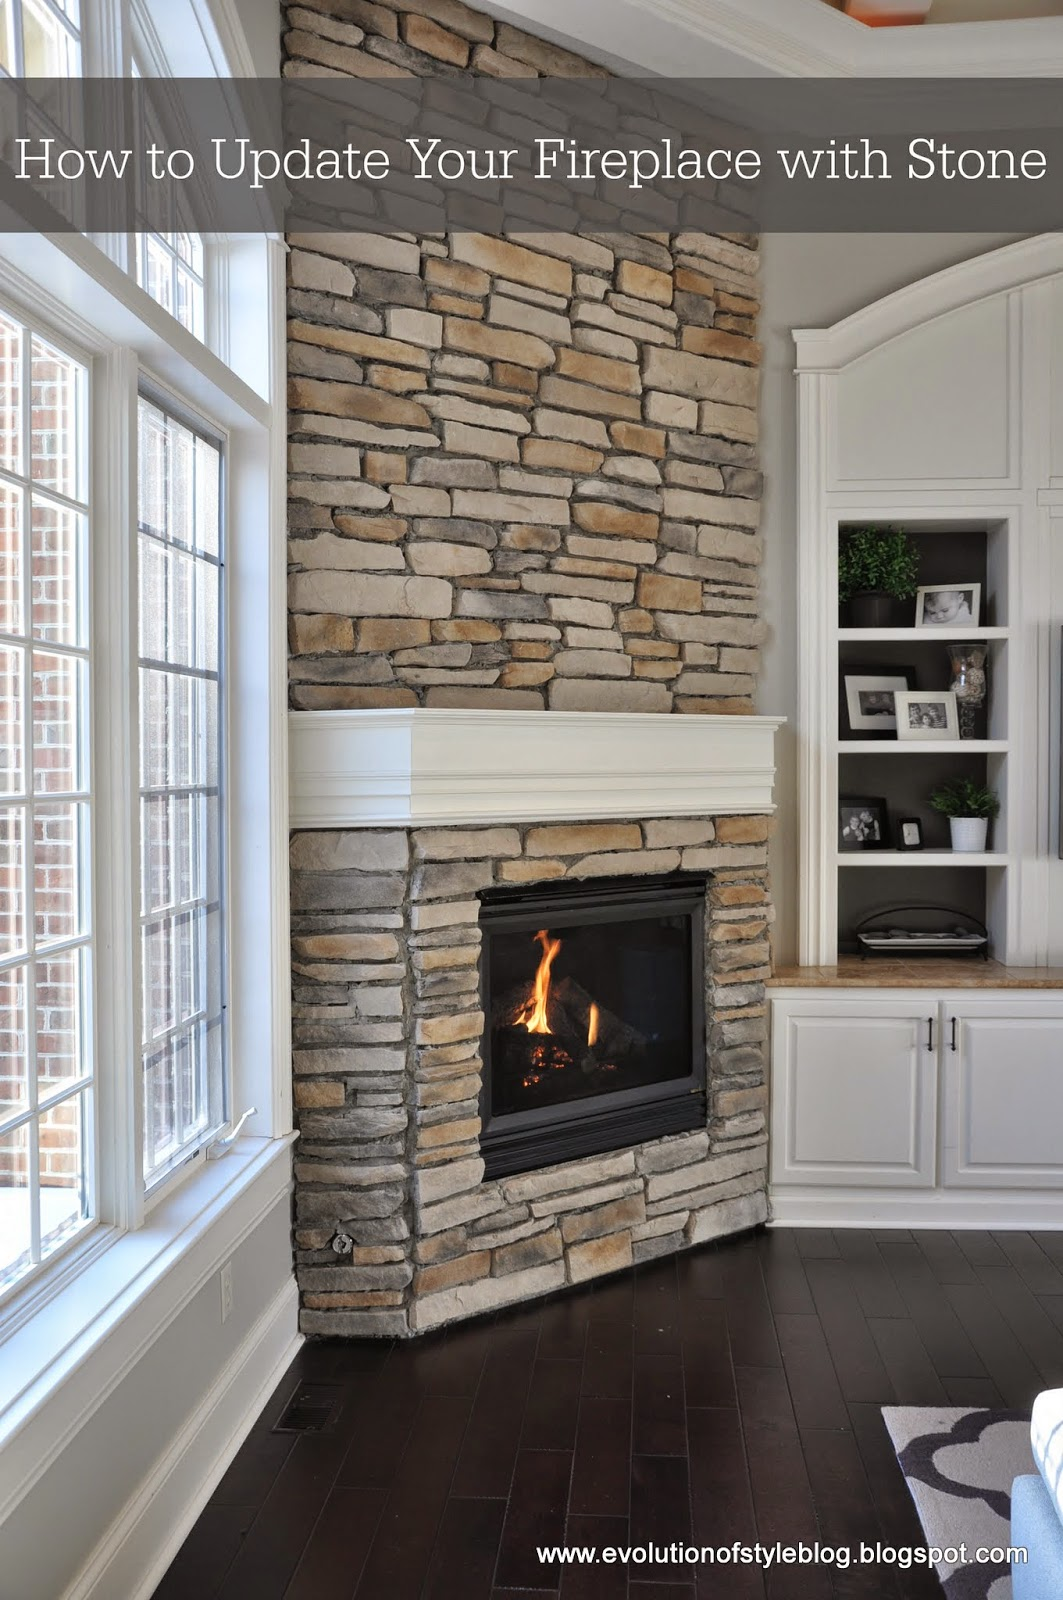 Fire Stones For Fireplace How To Update Your Fireplace With Stone Evolution Of Style